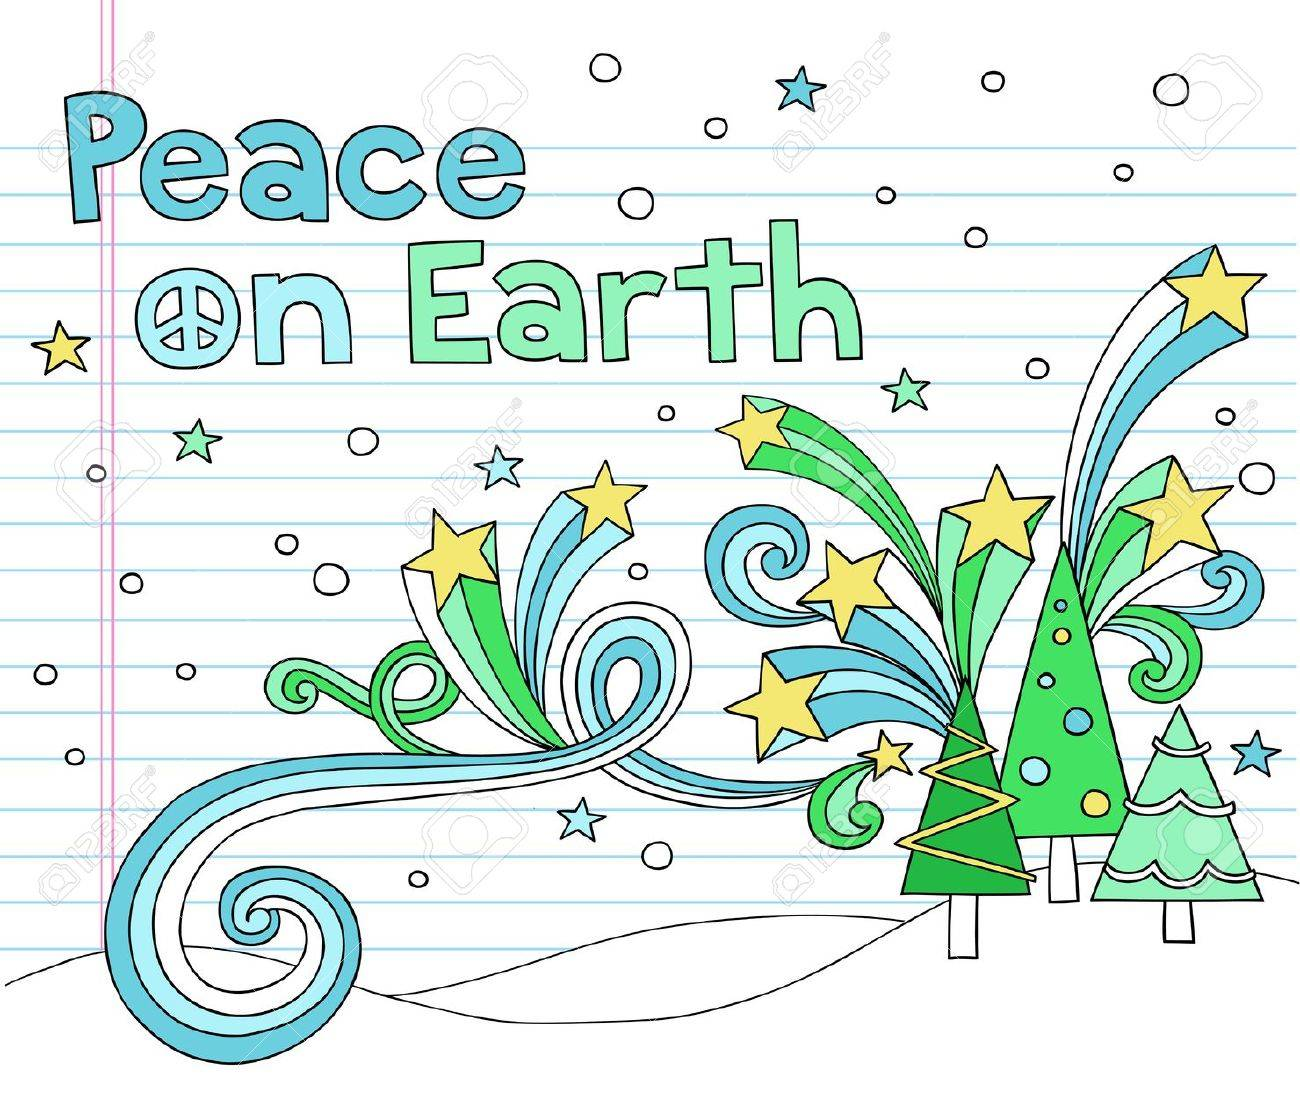 Peace on Earth Christmas Tree Notebook Doodles with Stars and Swirls- Hand-Drawn Vector Illustration Design Elements on Lined Sketchbook Paper Background Stock Vector - 11553514